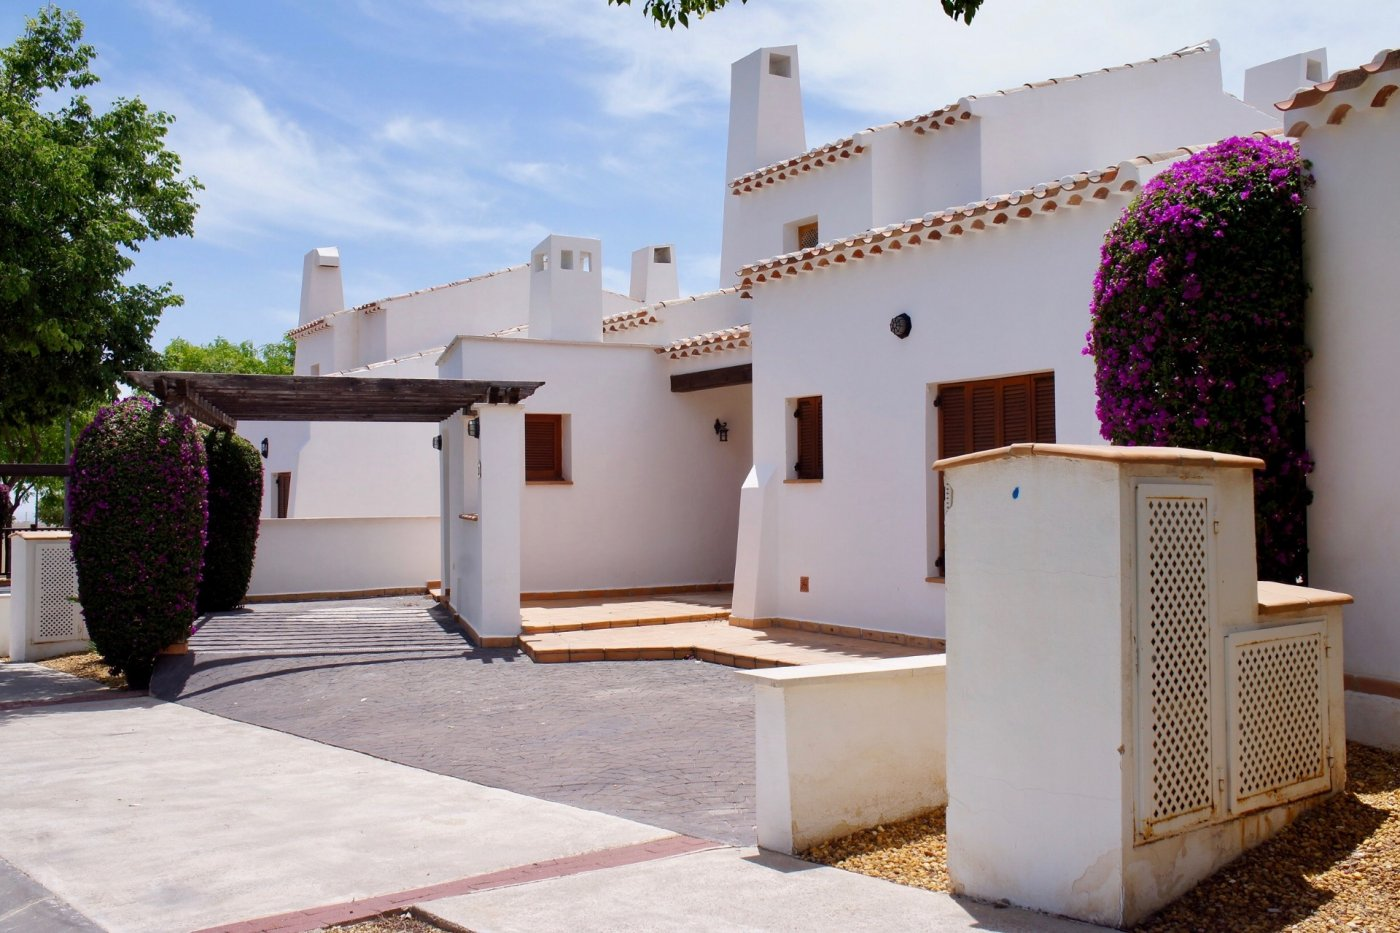 Gallery Image 29 of South West Facing 3 Bed Villa with Private Pool on El Valle Golf resort